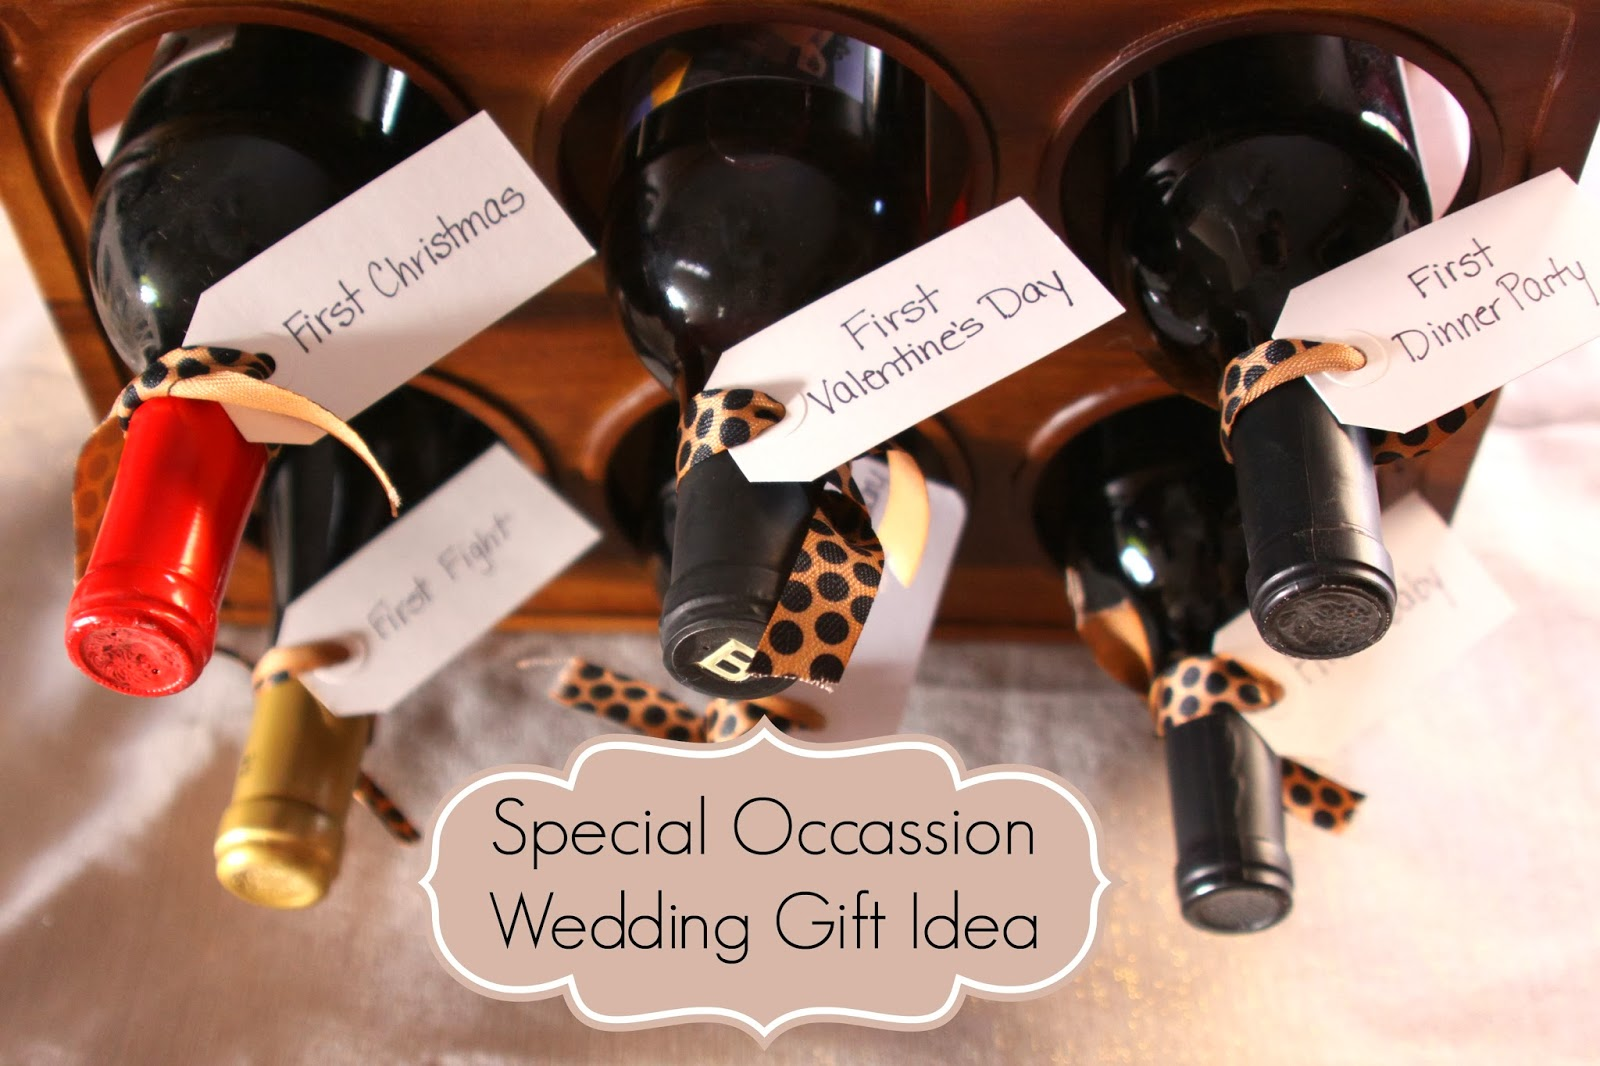 Special Day Wedding Gift Idea Target Registry